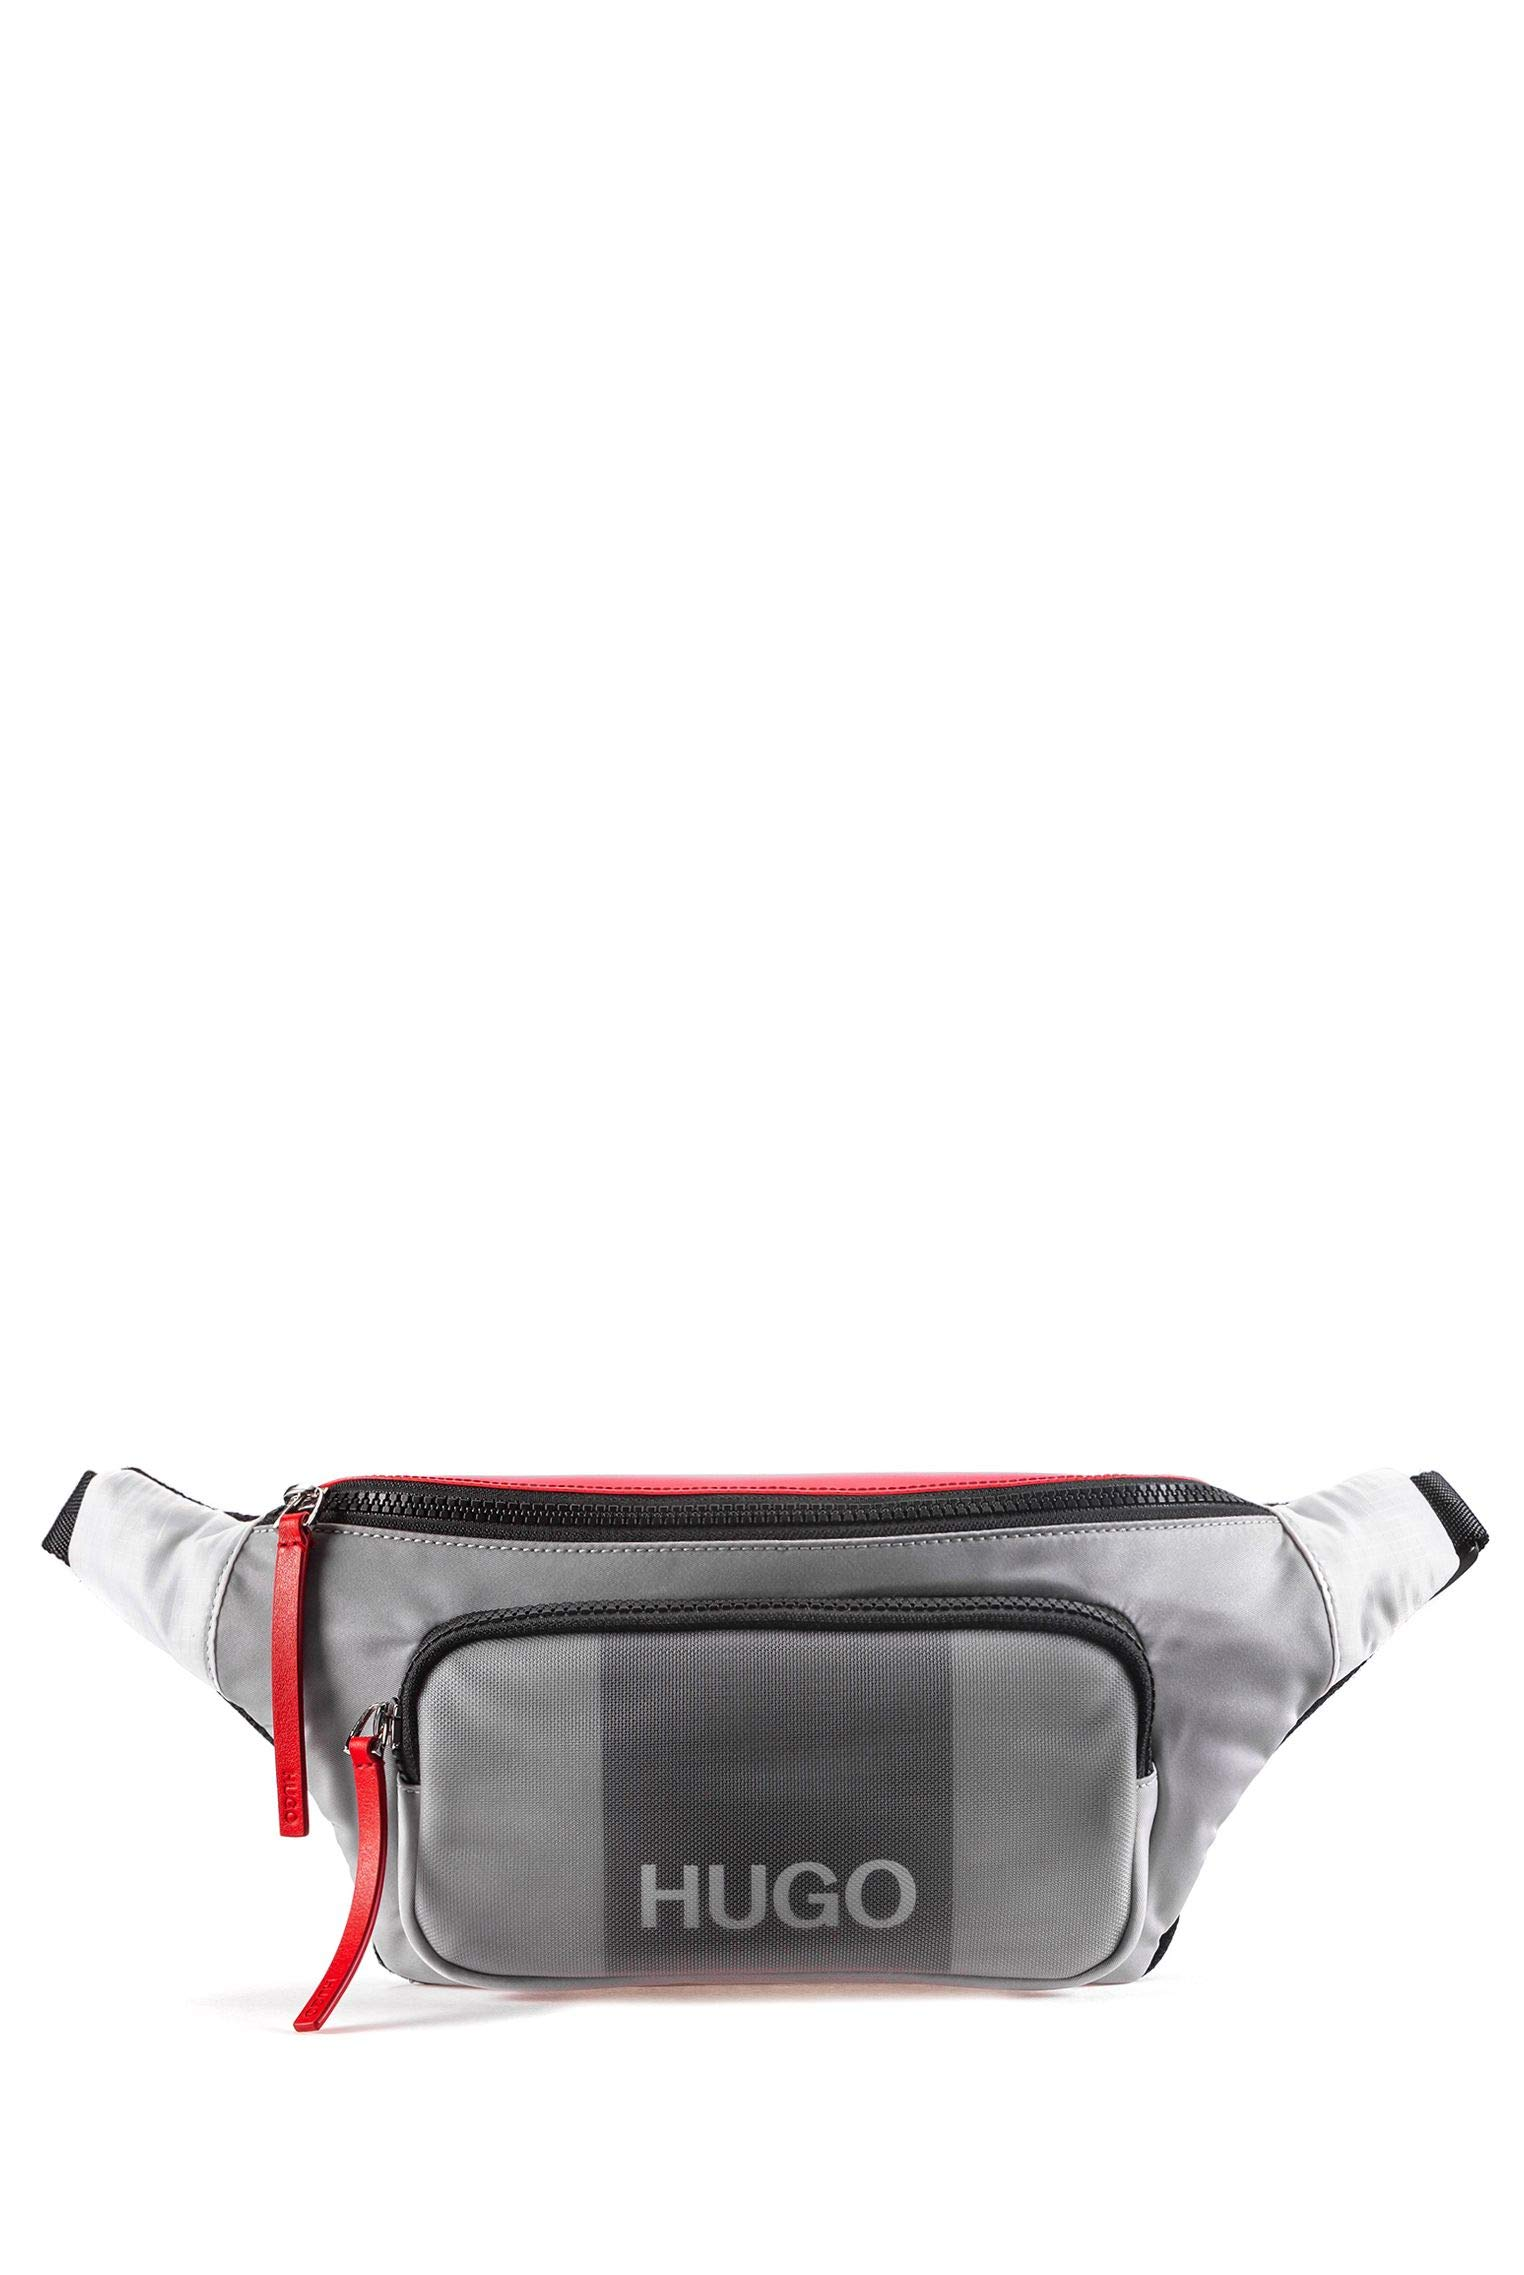 Hugo Boss Record Beltbag-N 10227286 01